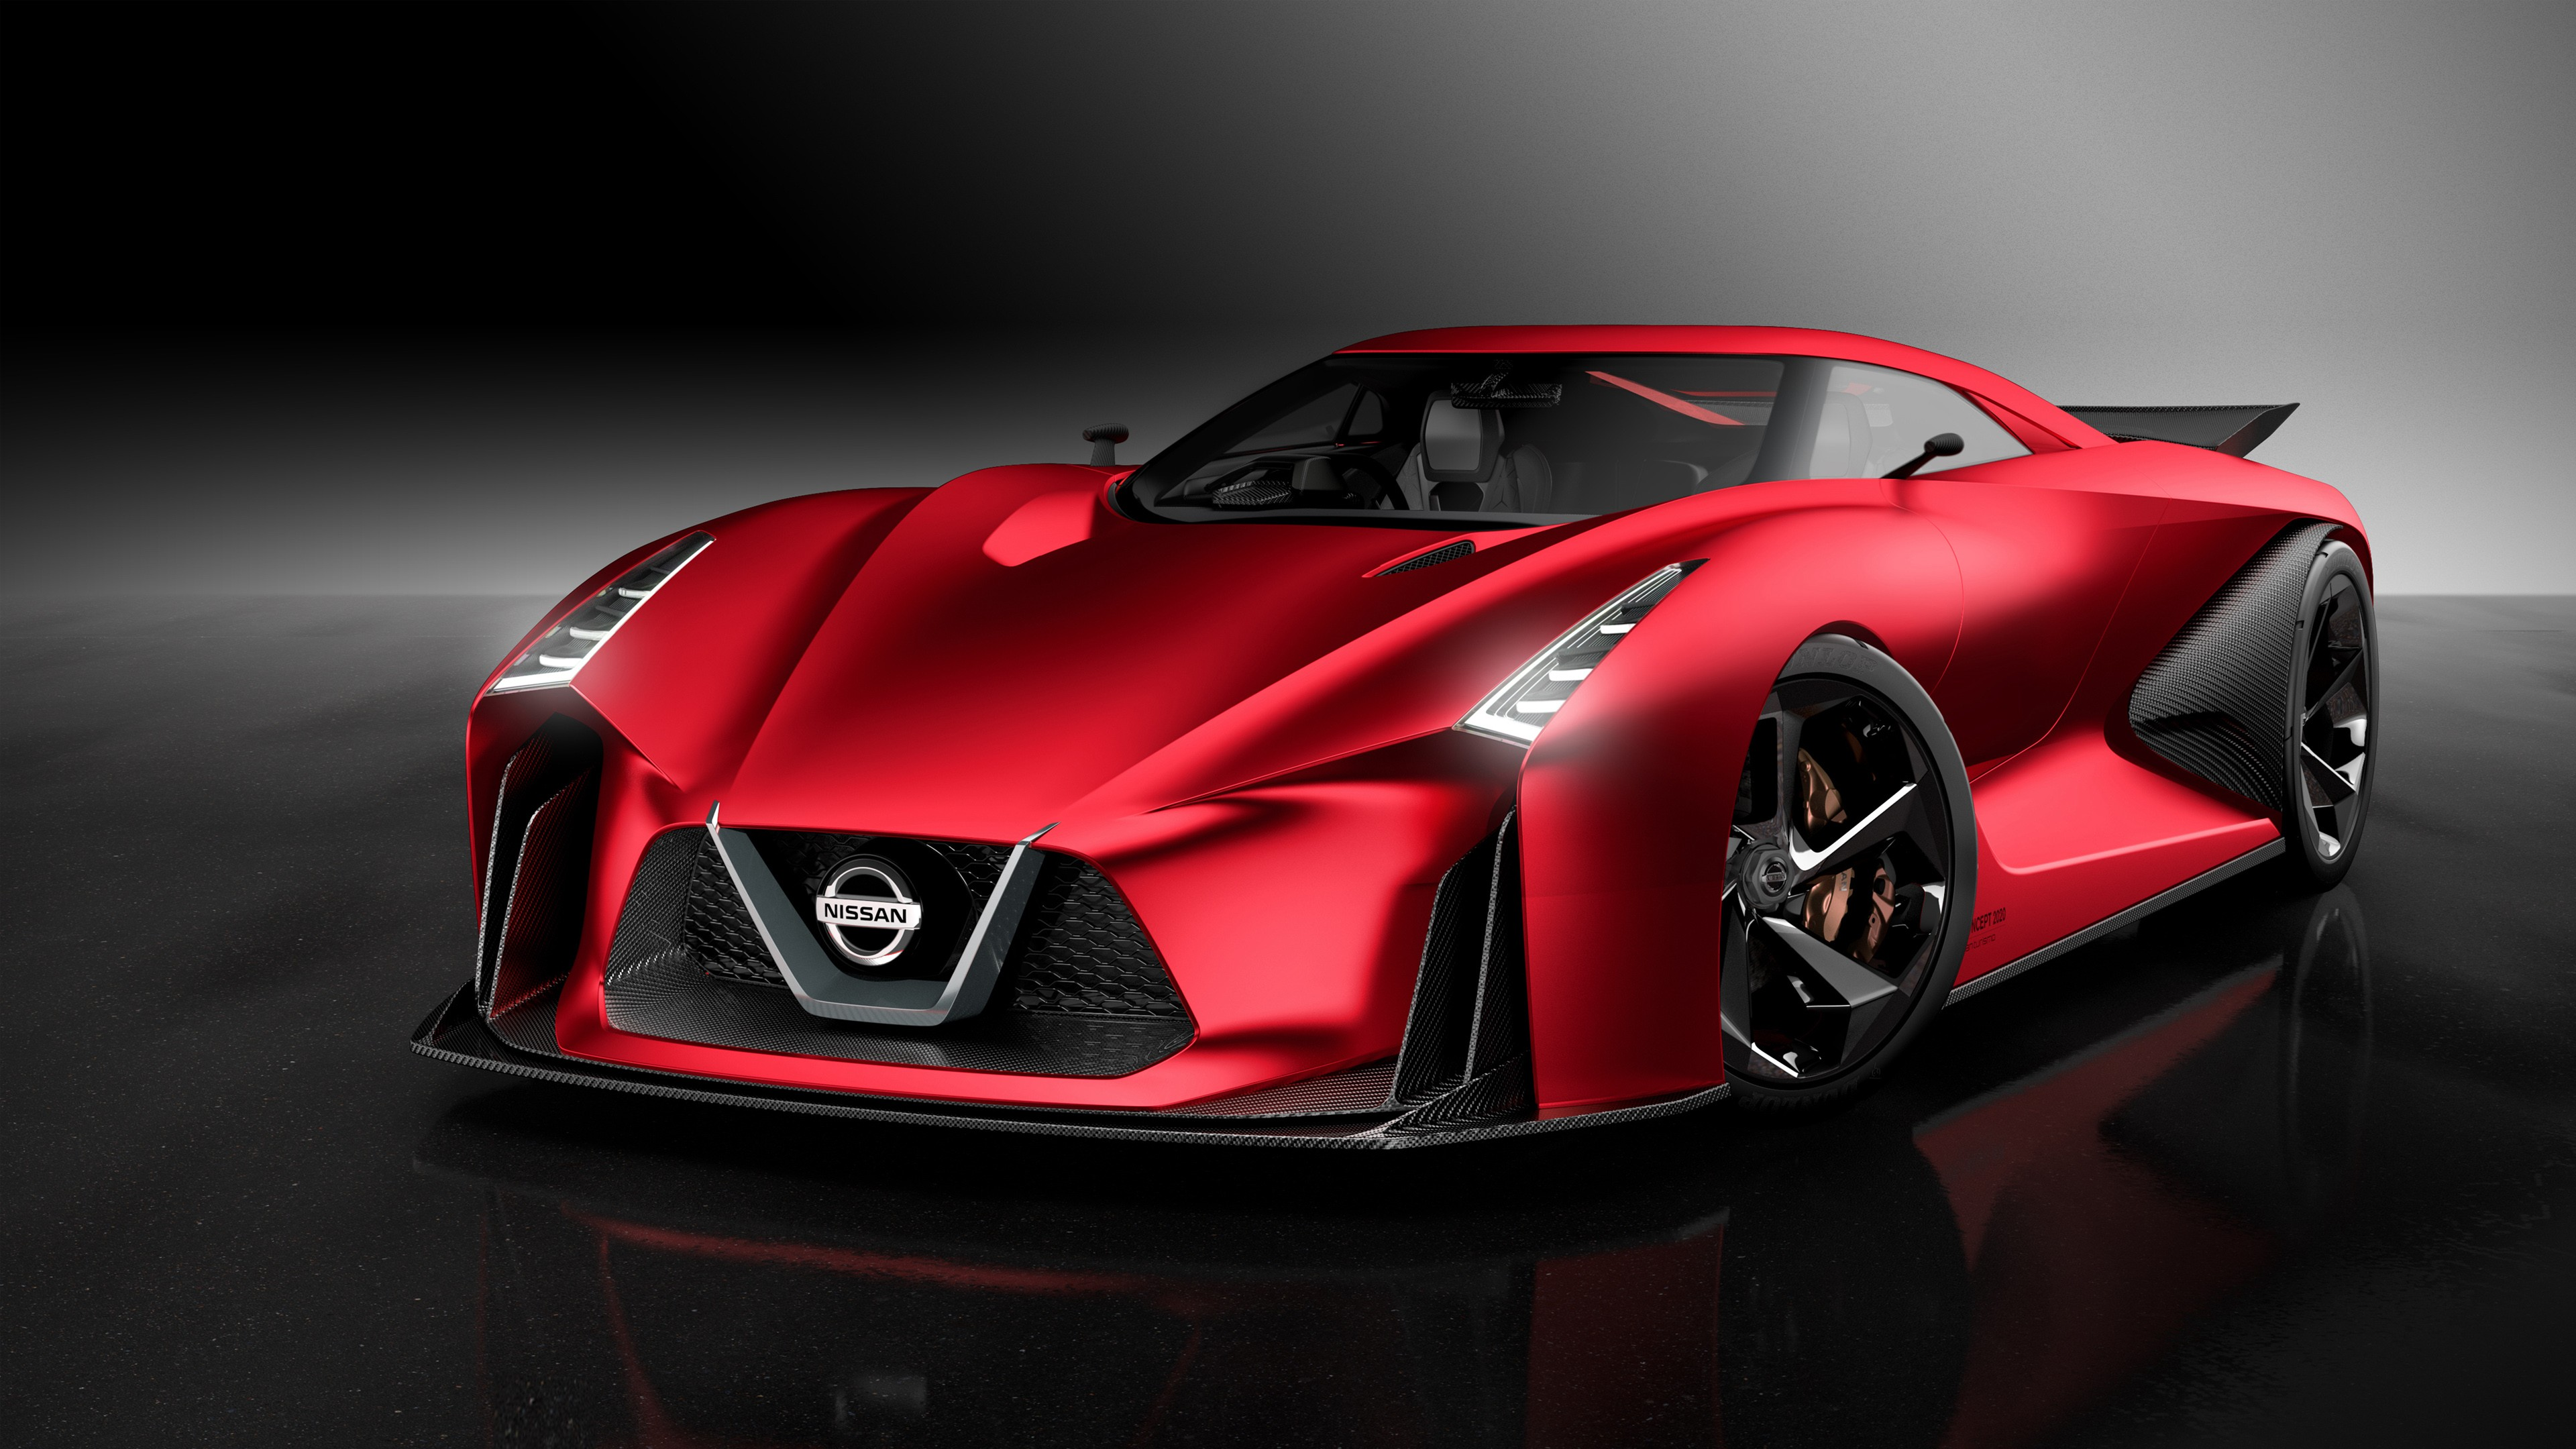 Nissan Concept 2020 Vision Gran Turismo Wallpaper Hd Car